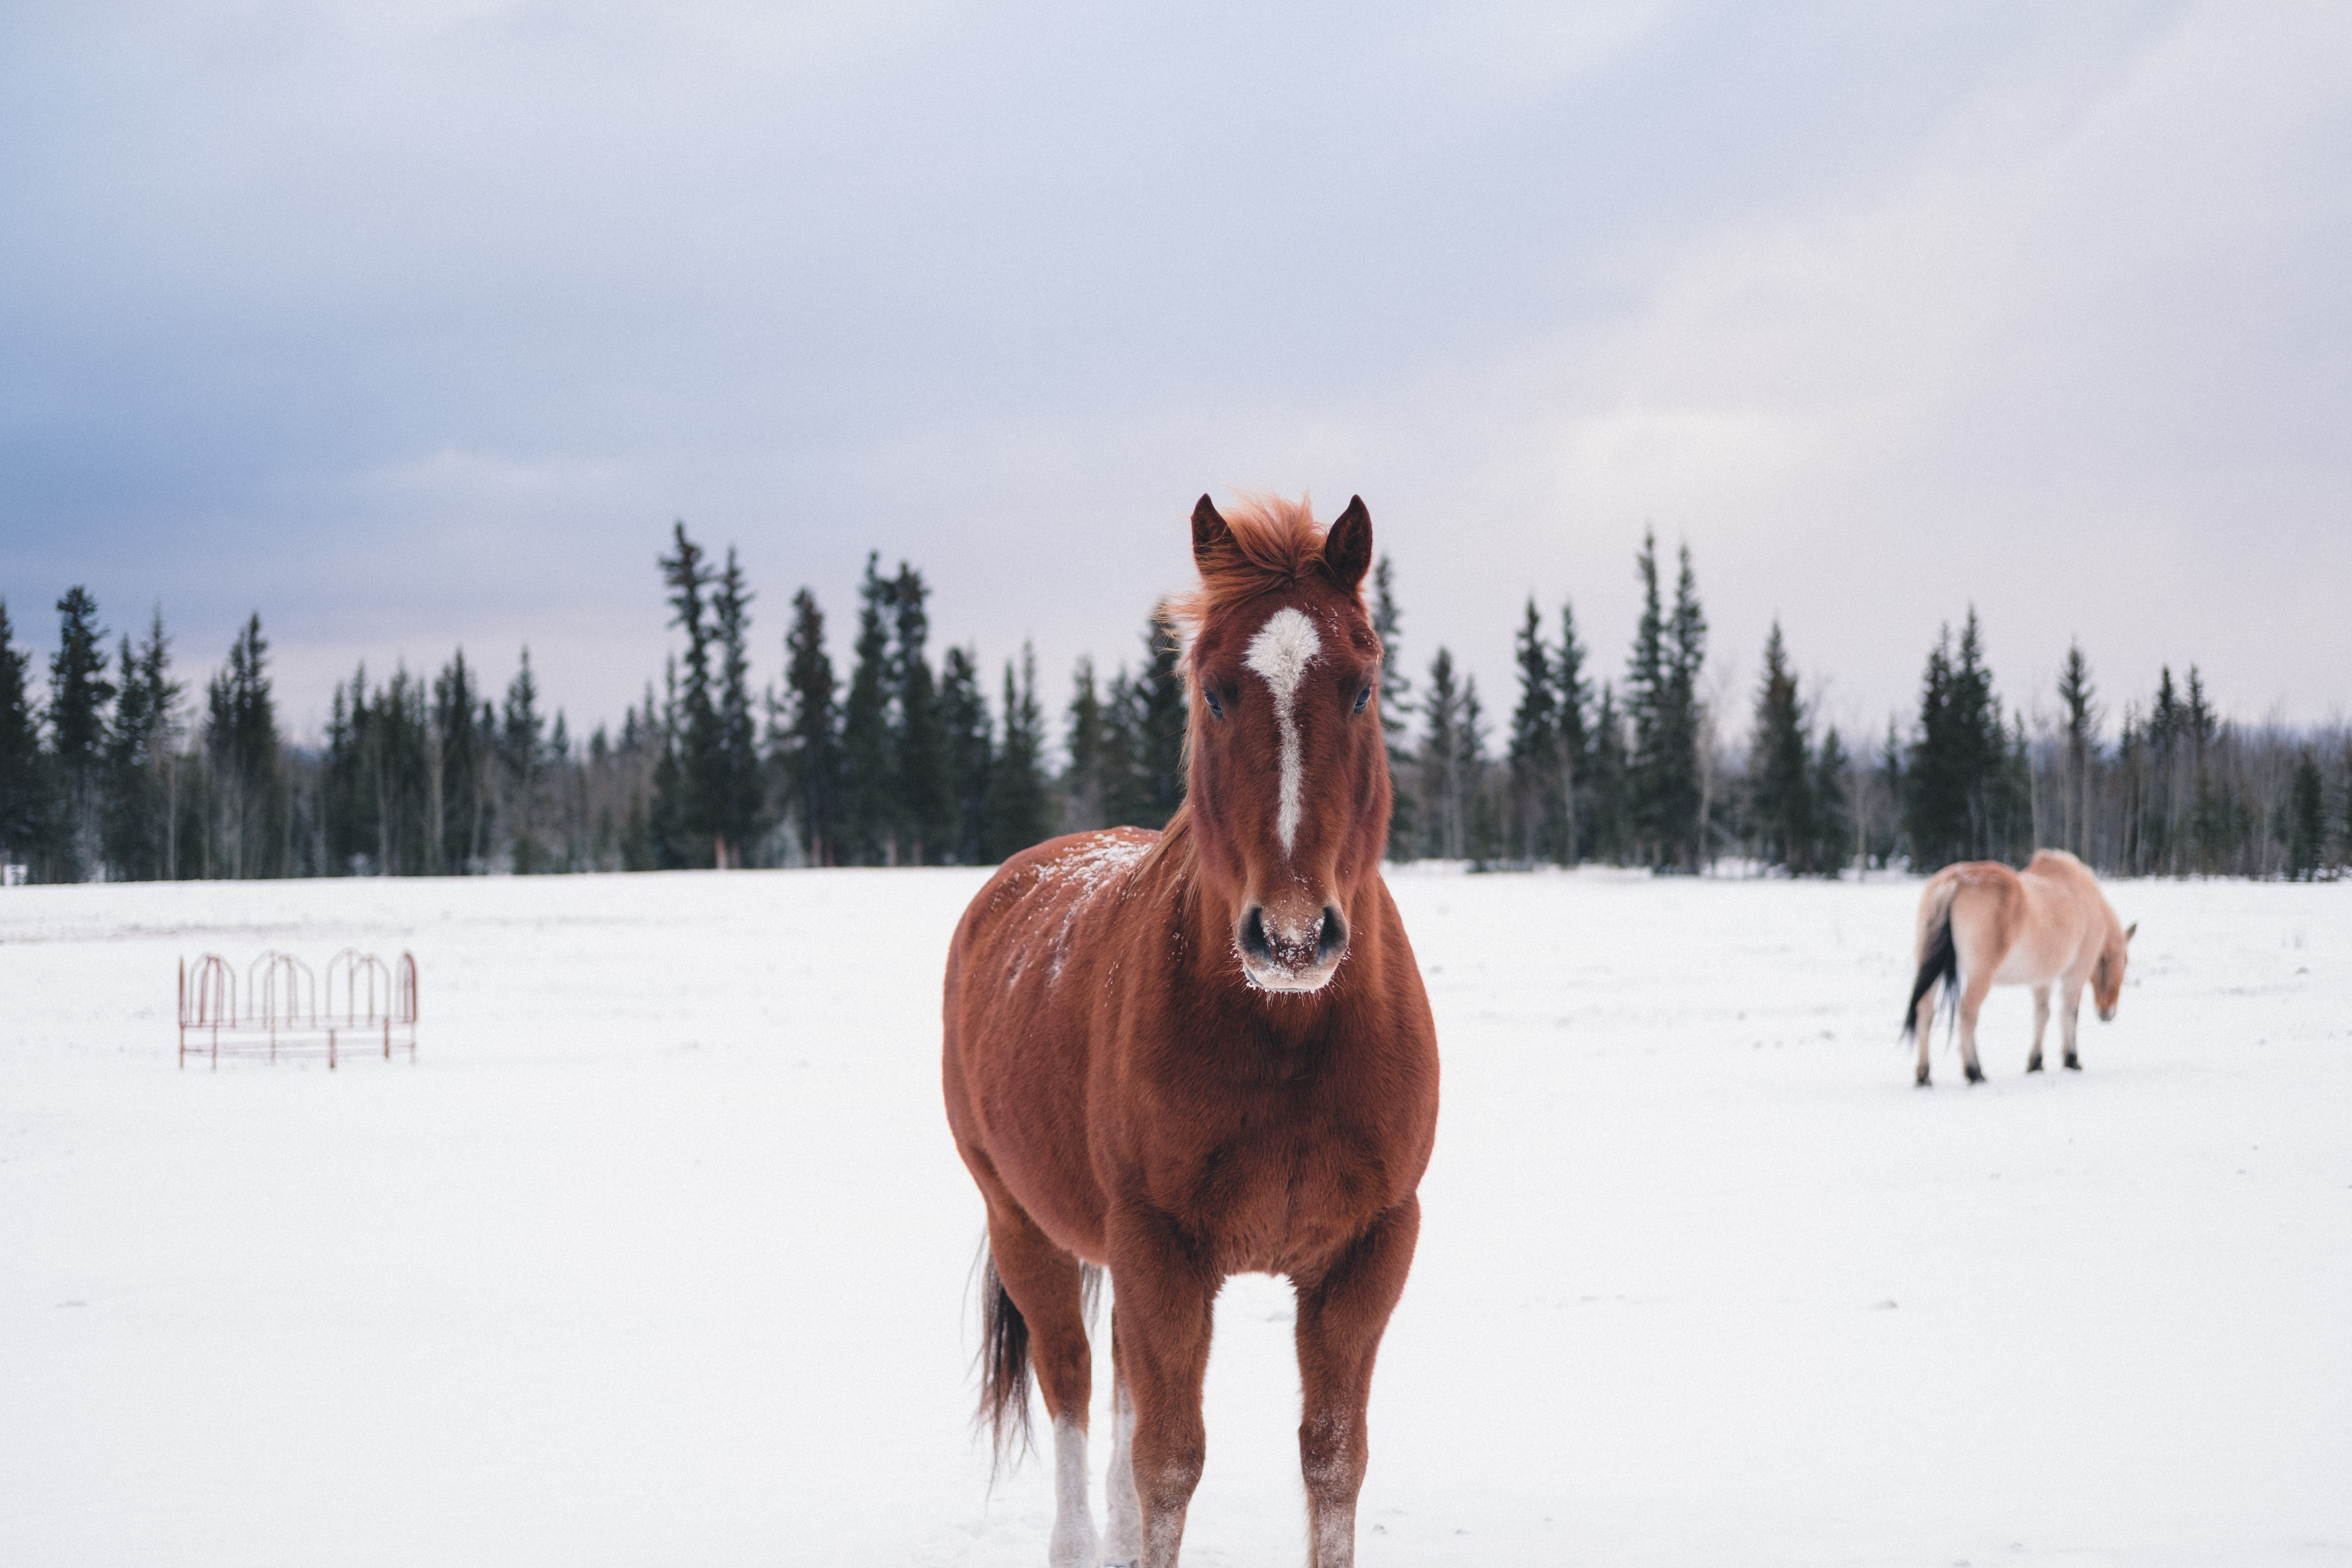 A brown horse with a white stripe on its head standing on snow with another horse at the back